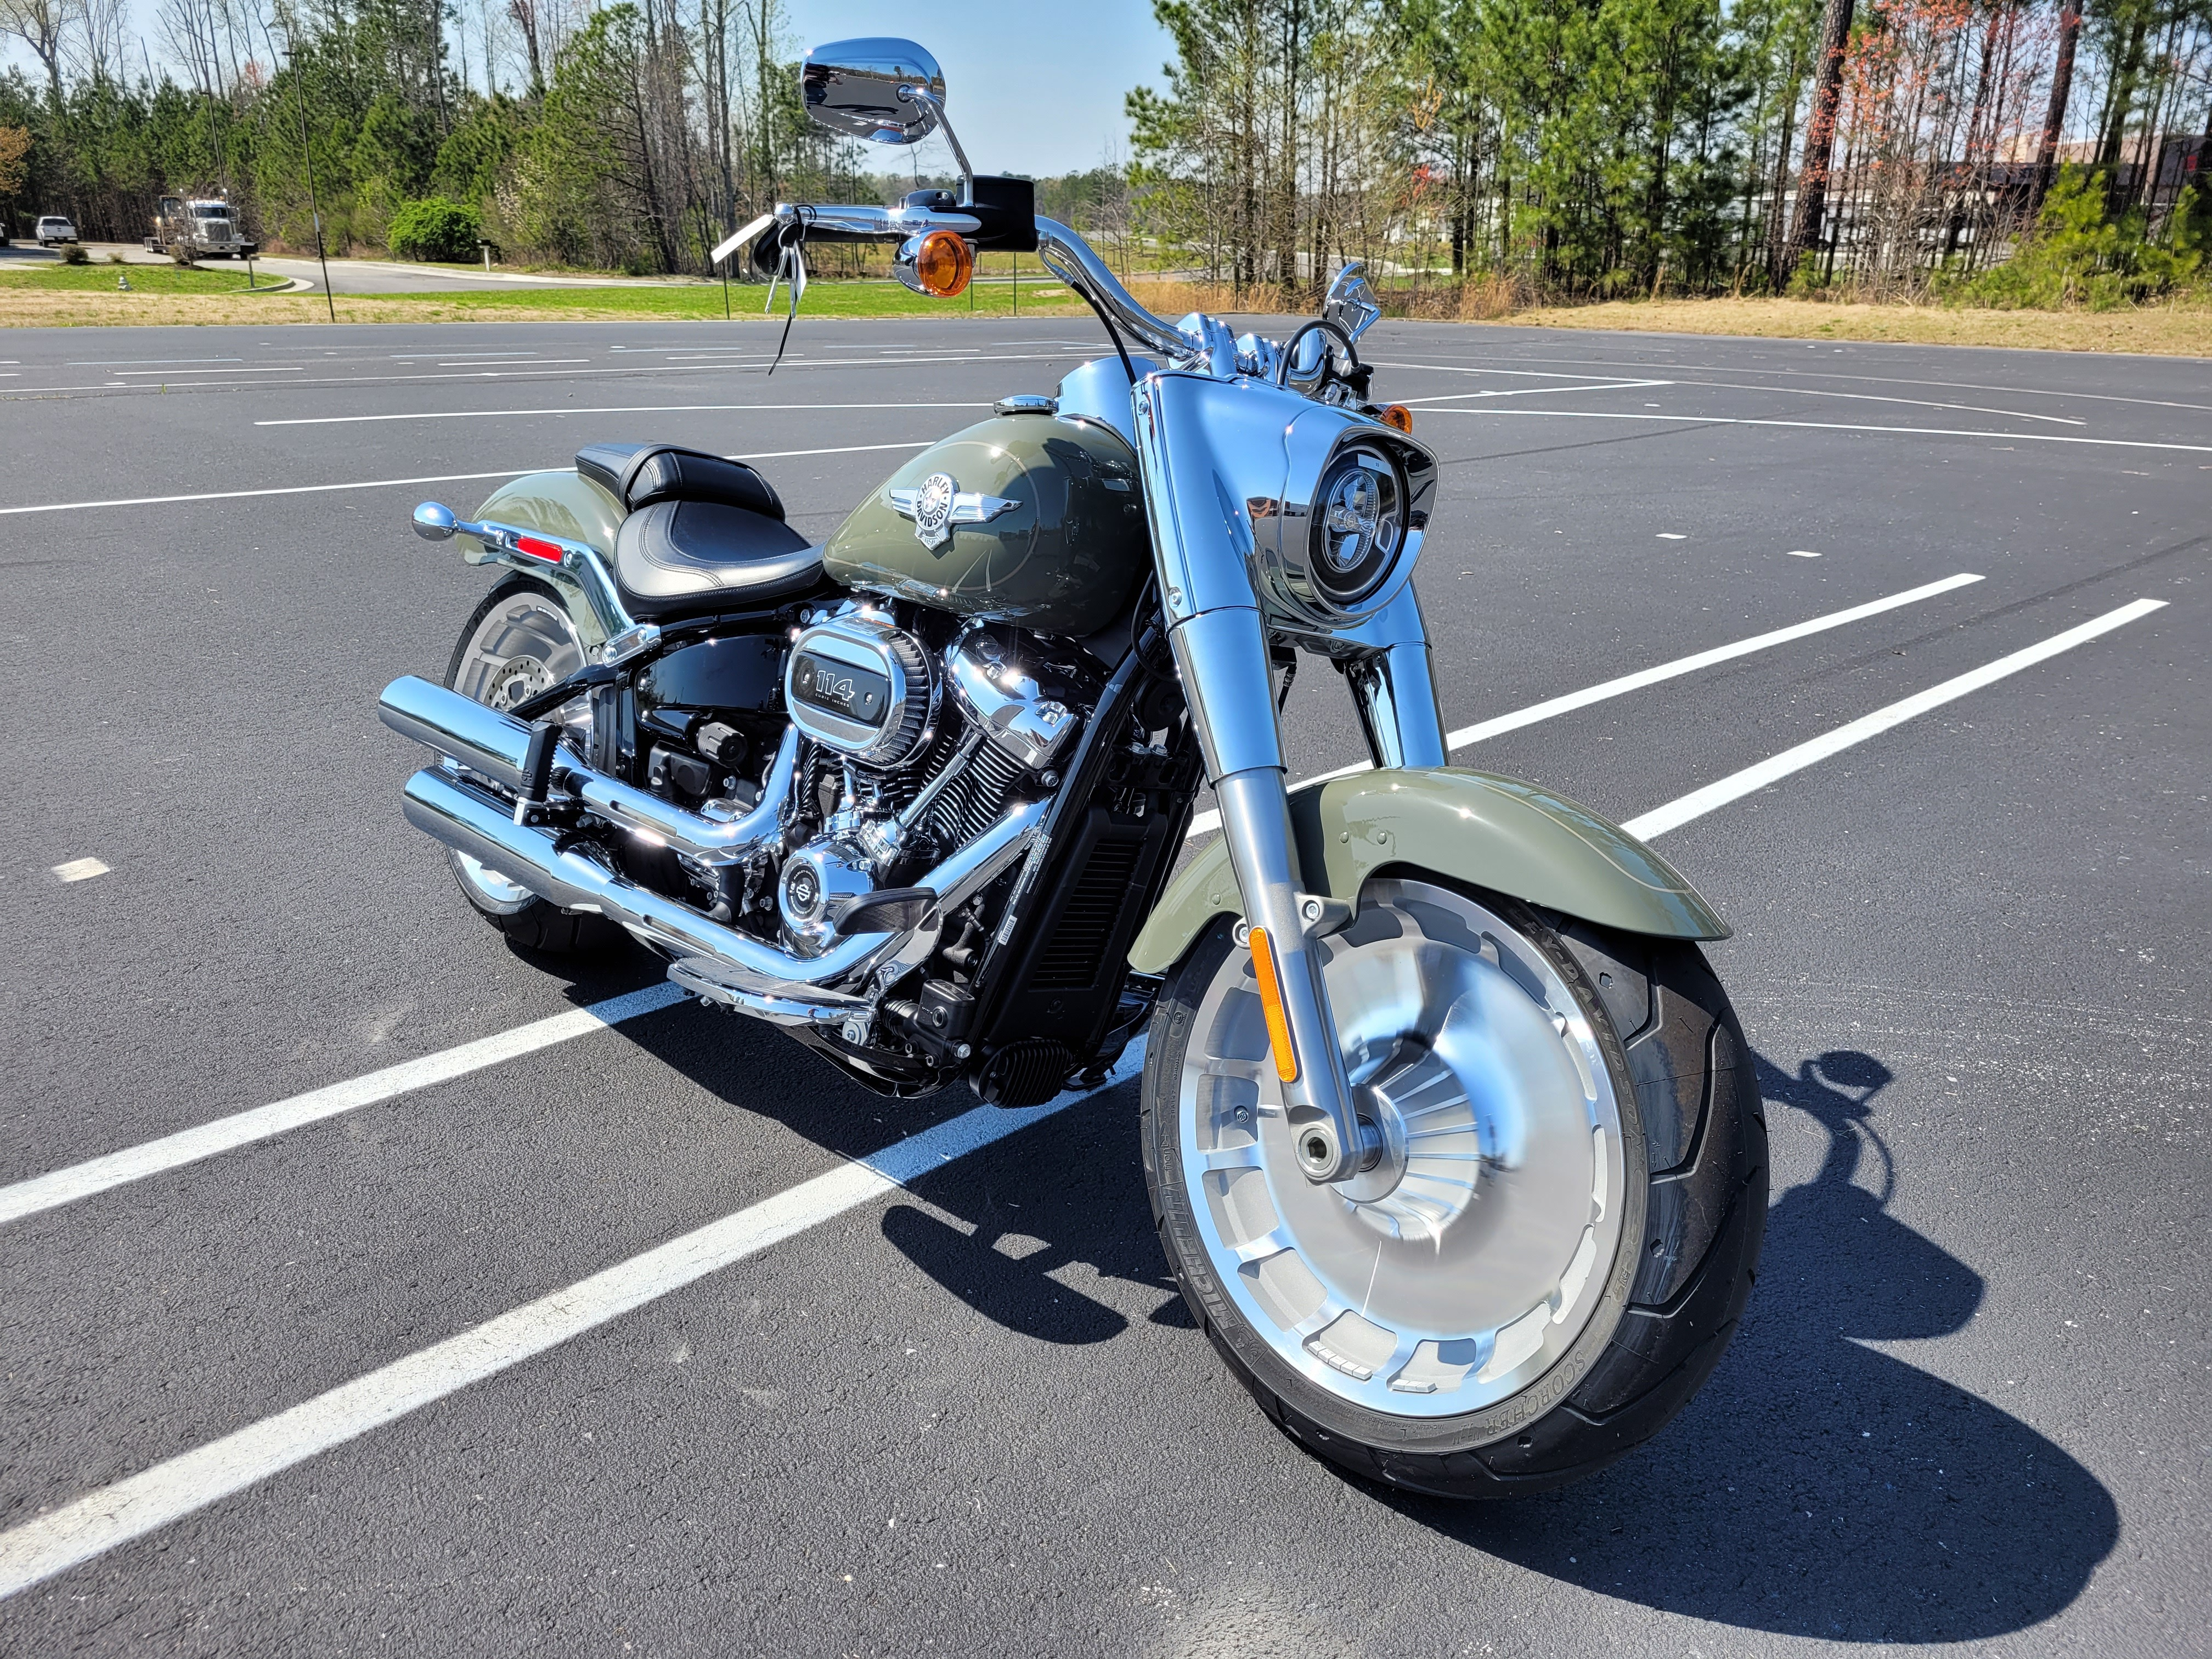 2021 Harley-Davidson Cruiser FLFBS Fat Boy 114 at Richmond Harley-Davidson